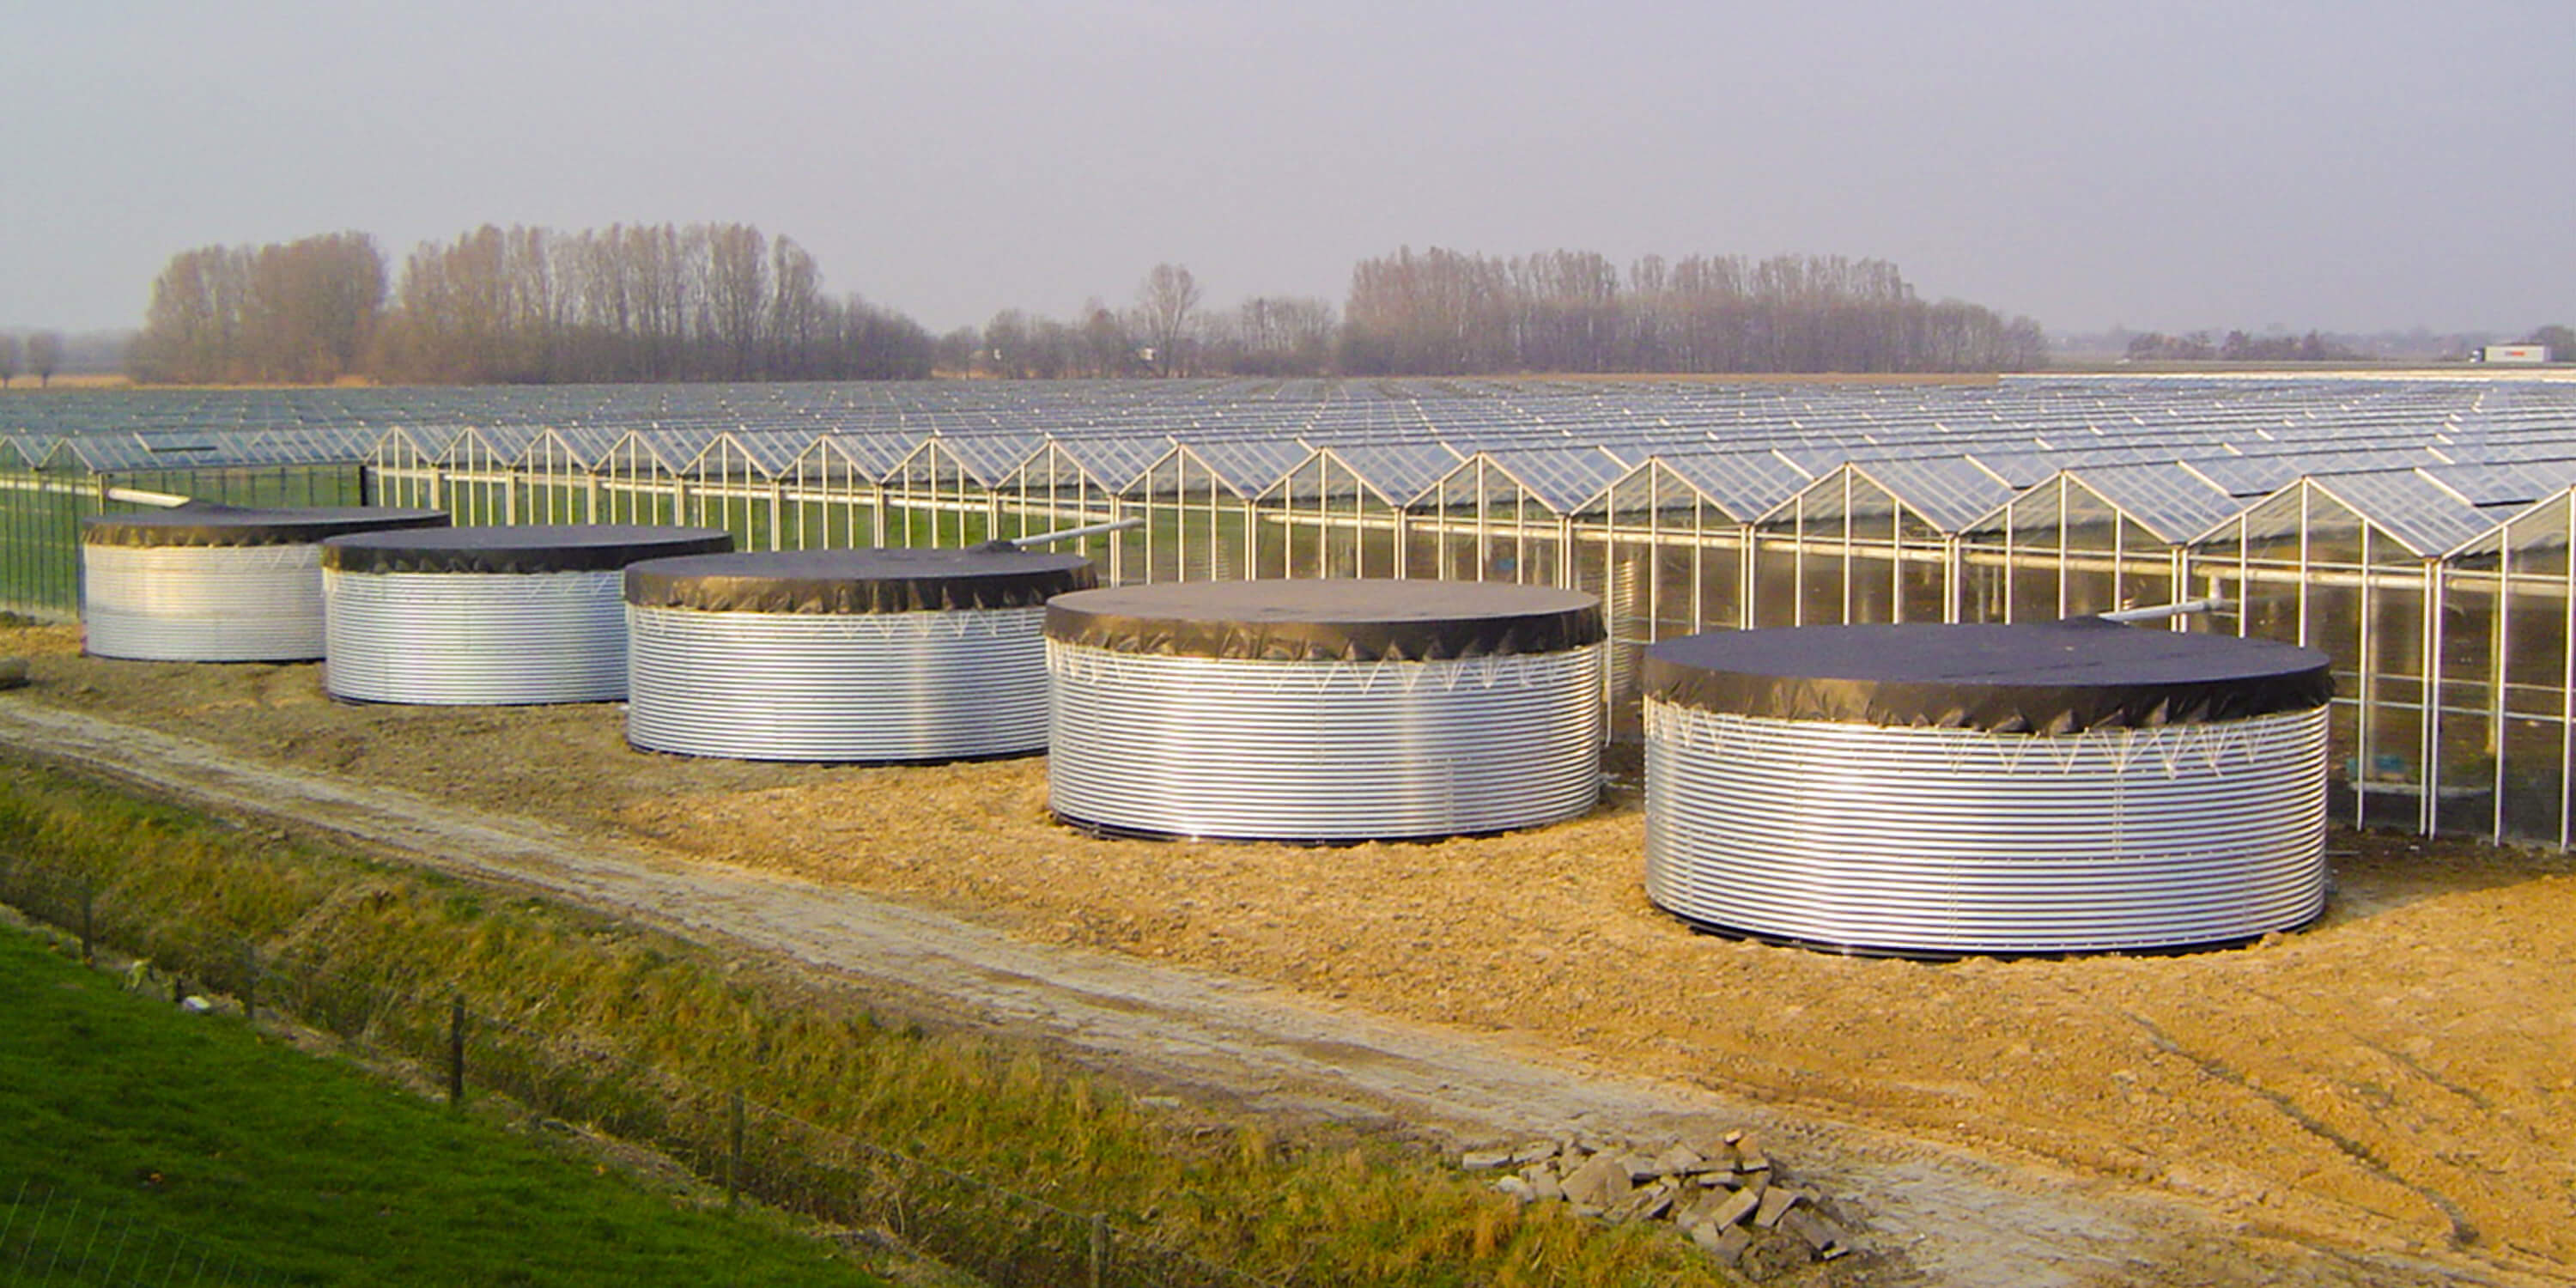 greenhouse irrigation tanks